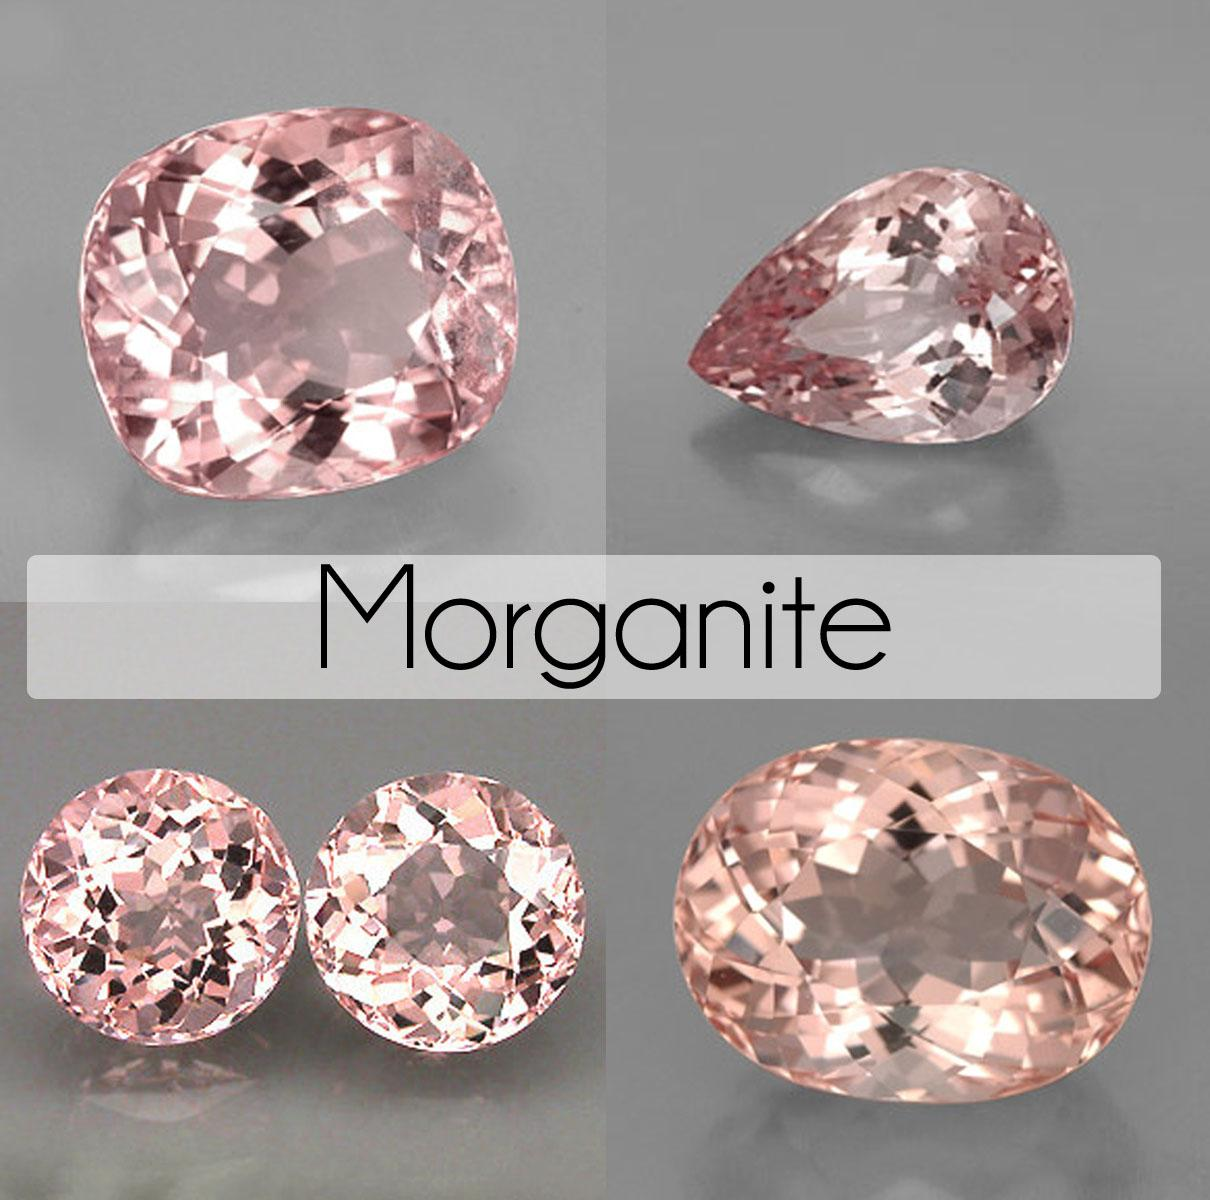 morganite-gemstones.jpg